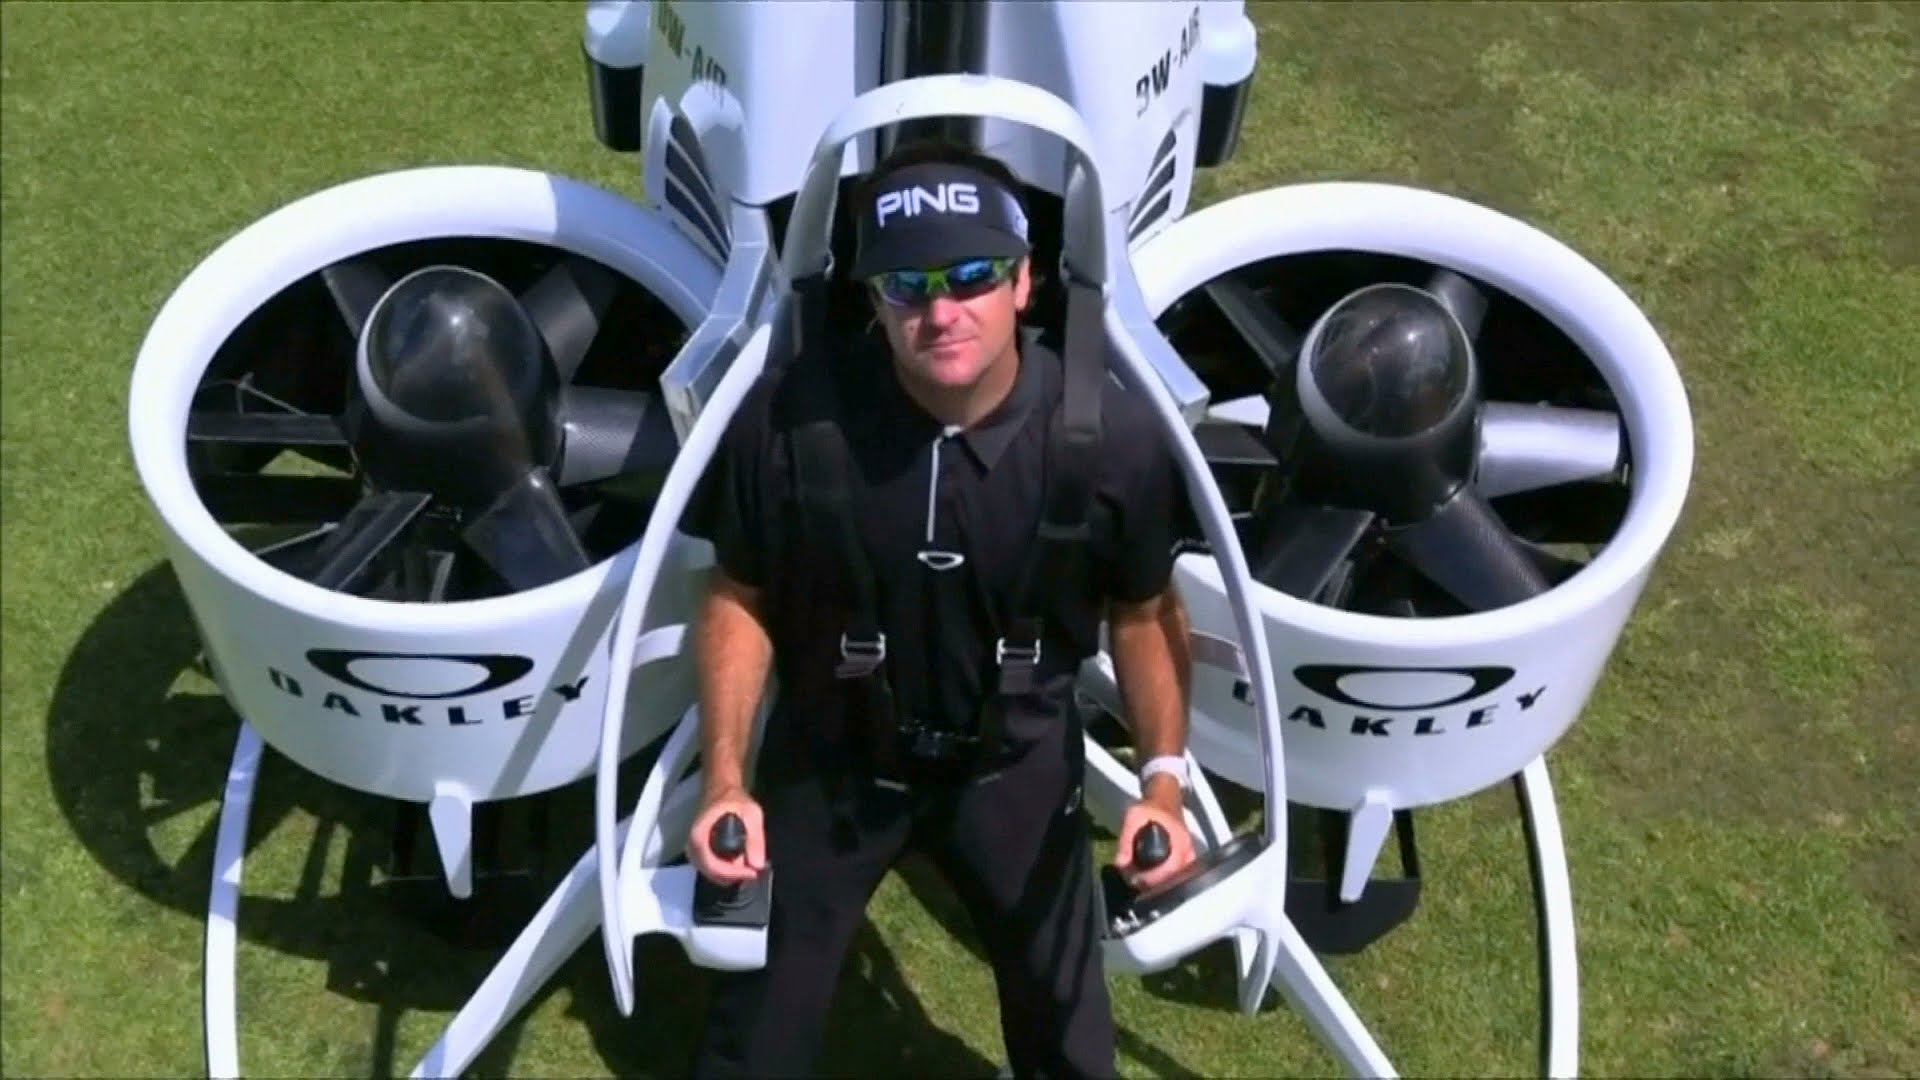 Bubba Watson shows off his $250,000 golf cart jetpack